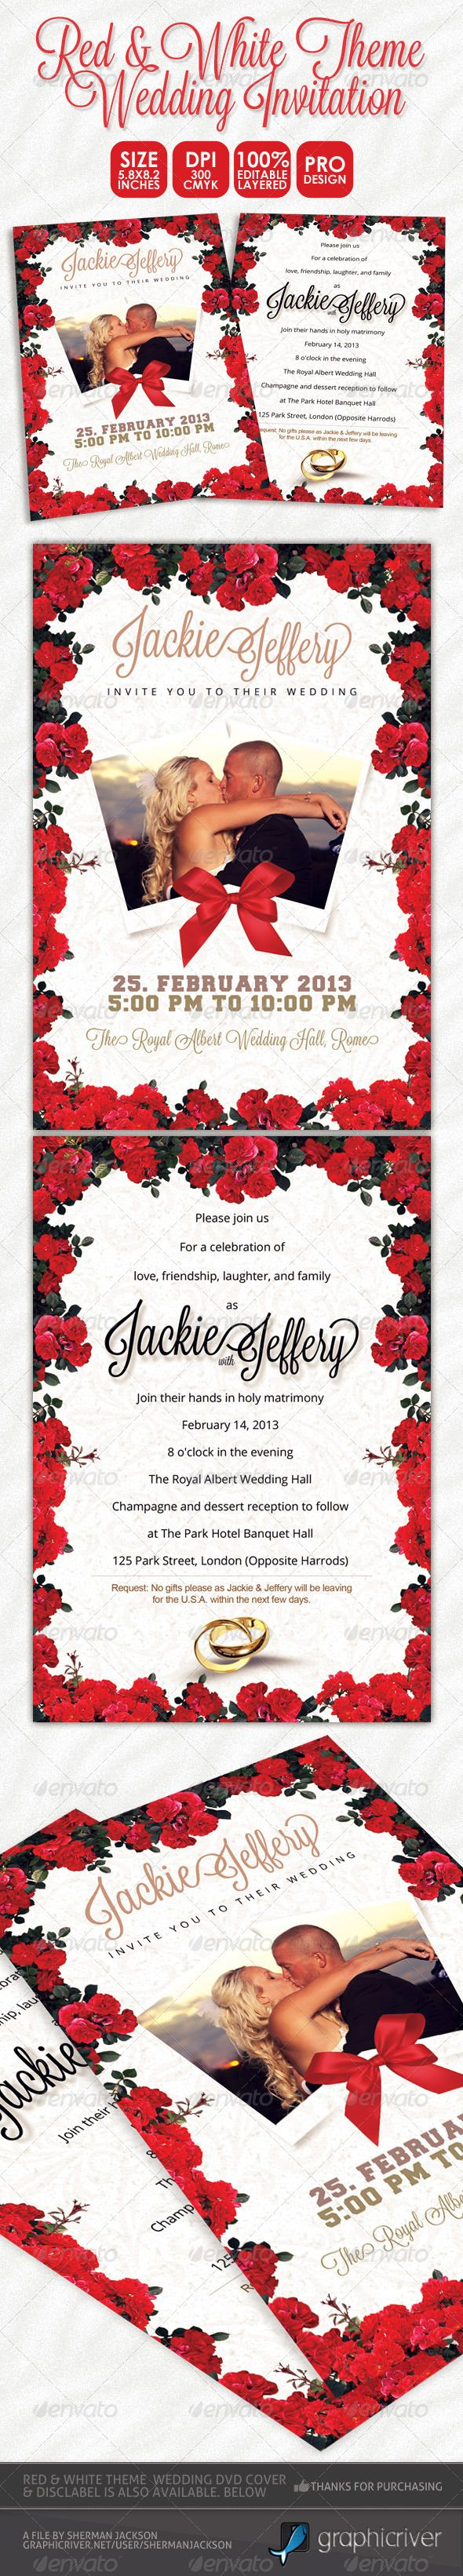 Red & White Theme Wedding Invitation Card | Wedding invitation cards ...